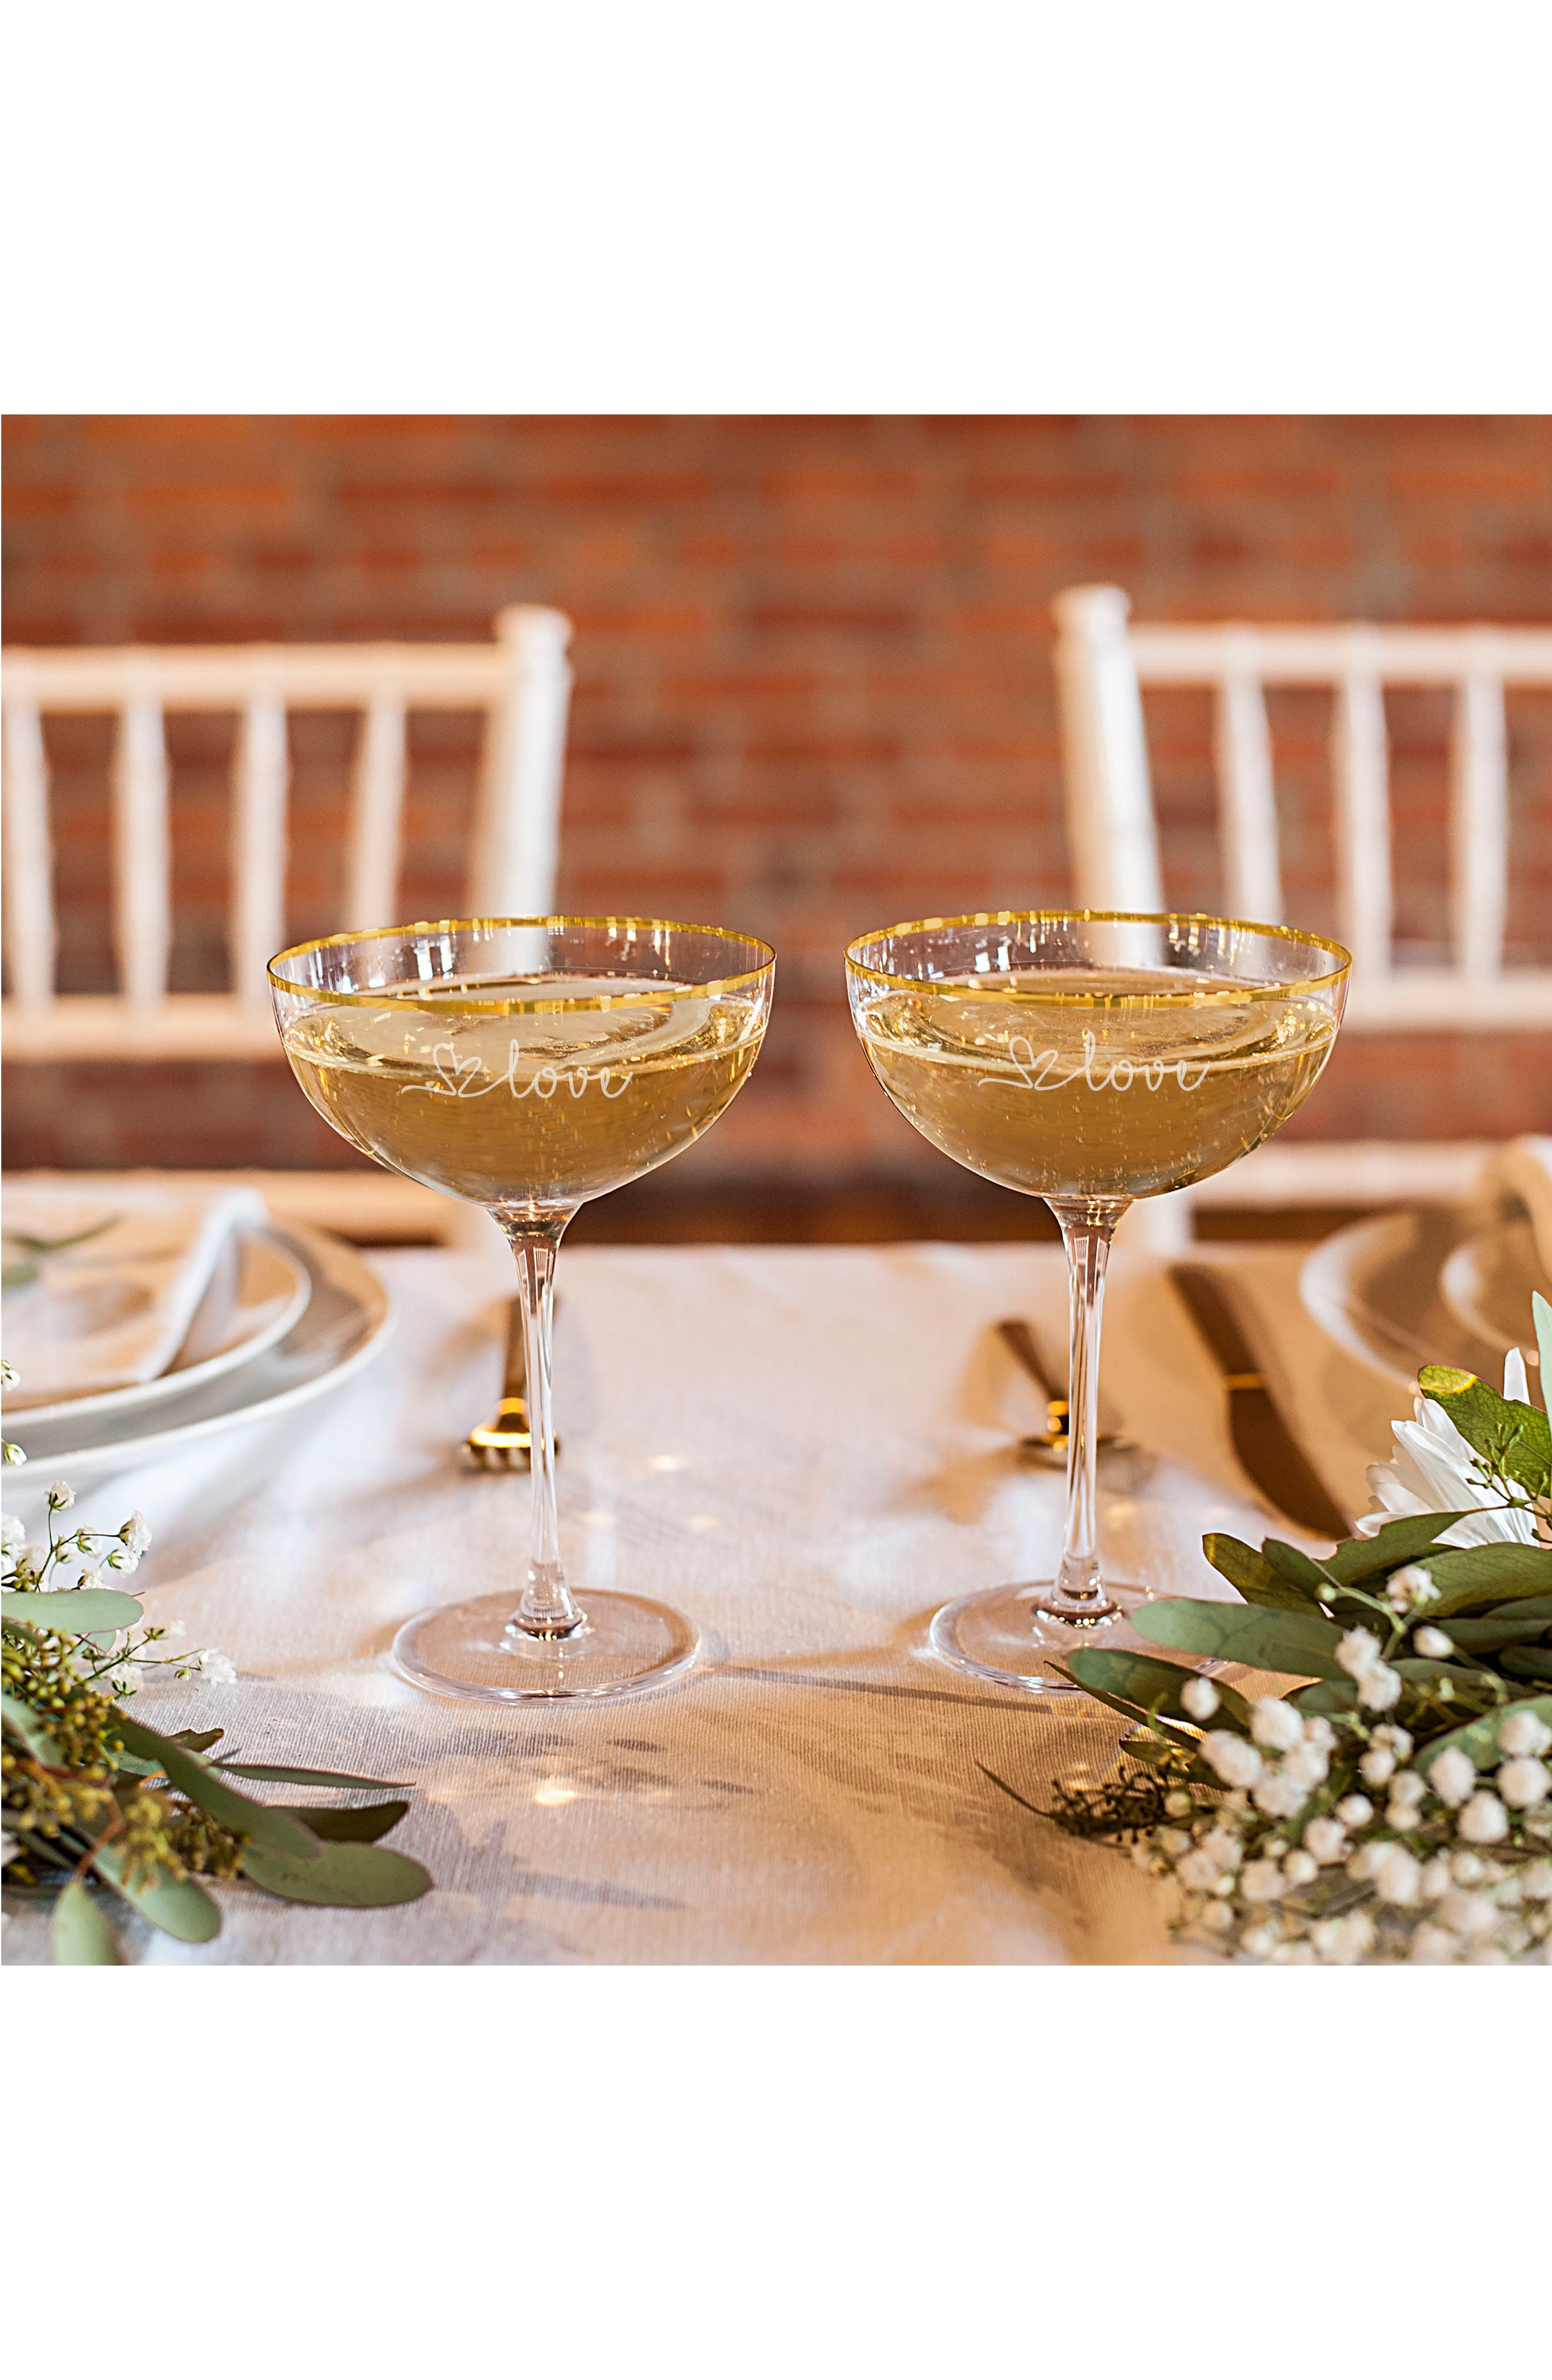 Love Set of 2 Champagne Coupe Toasting Glasses,                             Alternate thumbnail 3, color,                             710